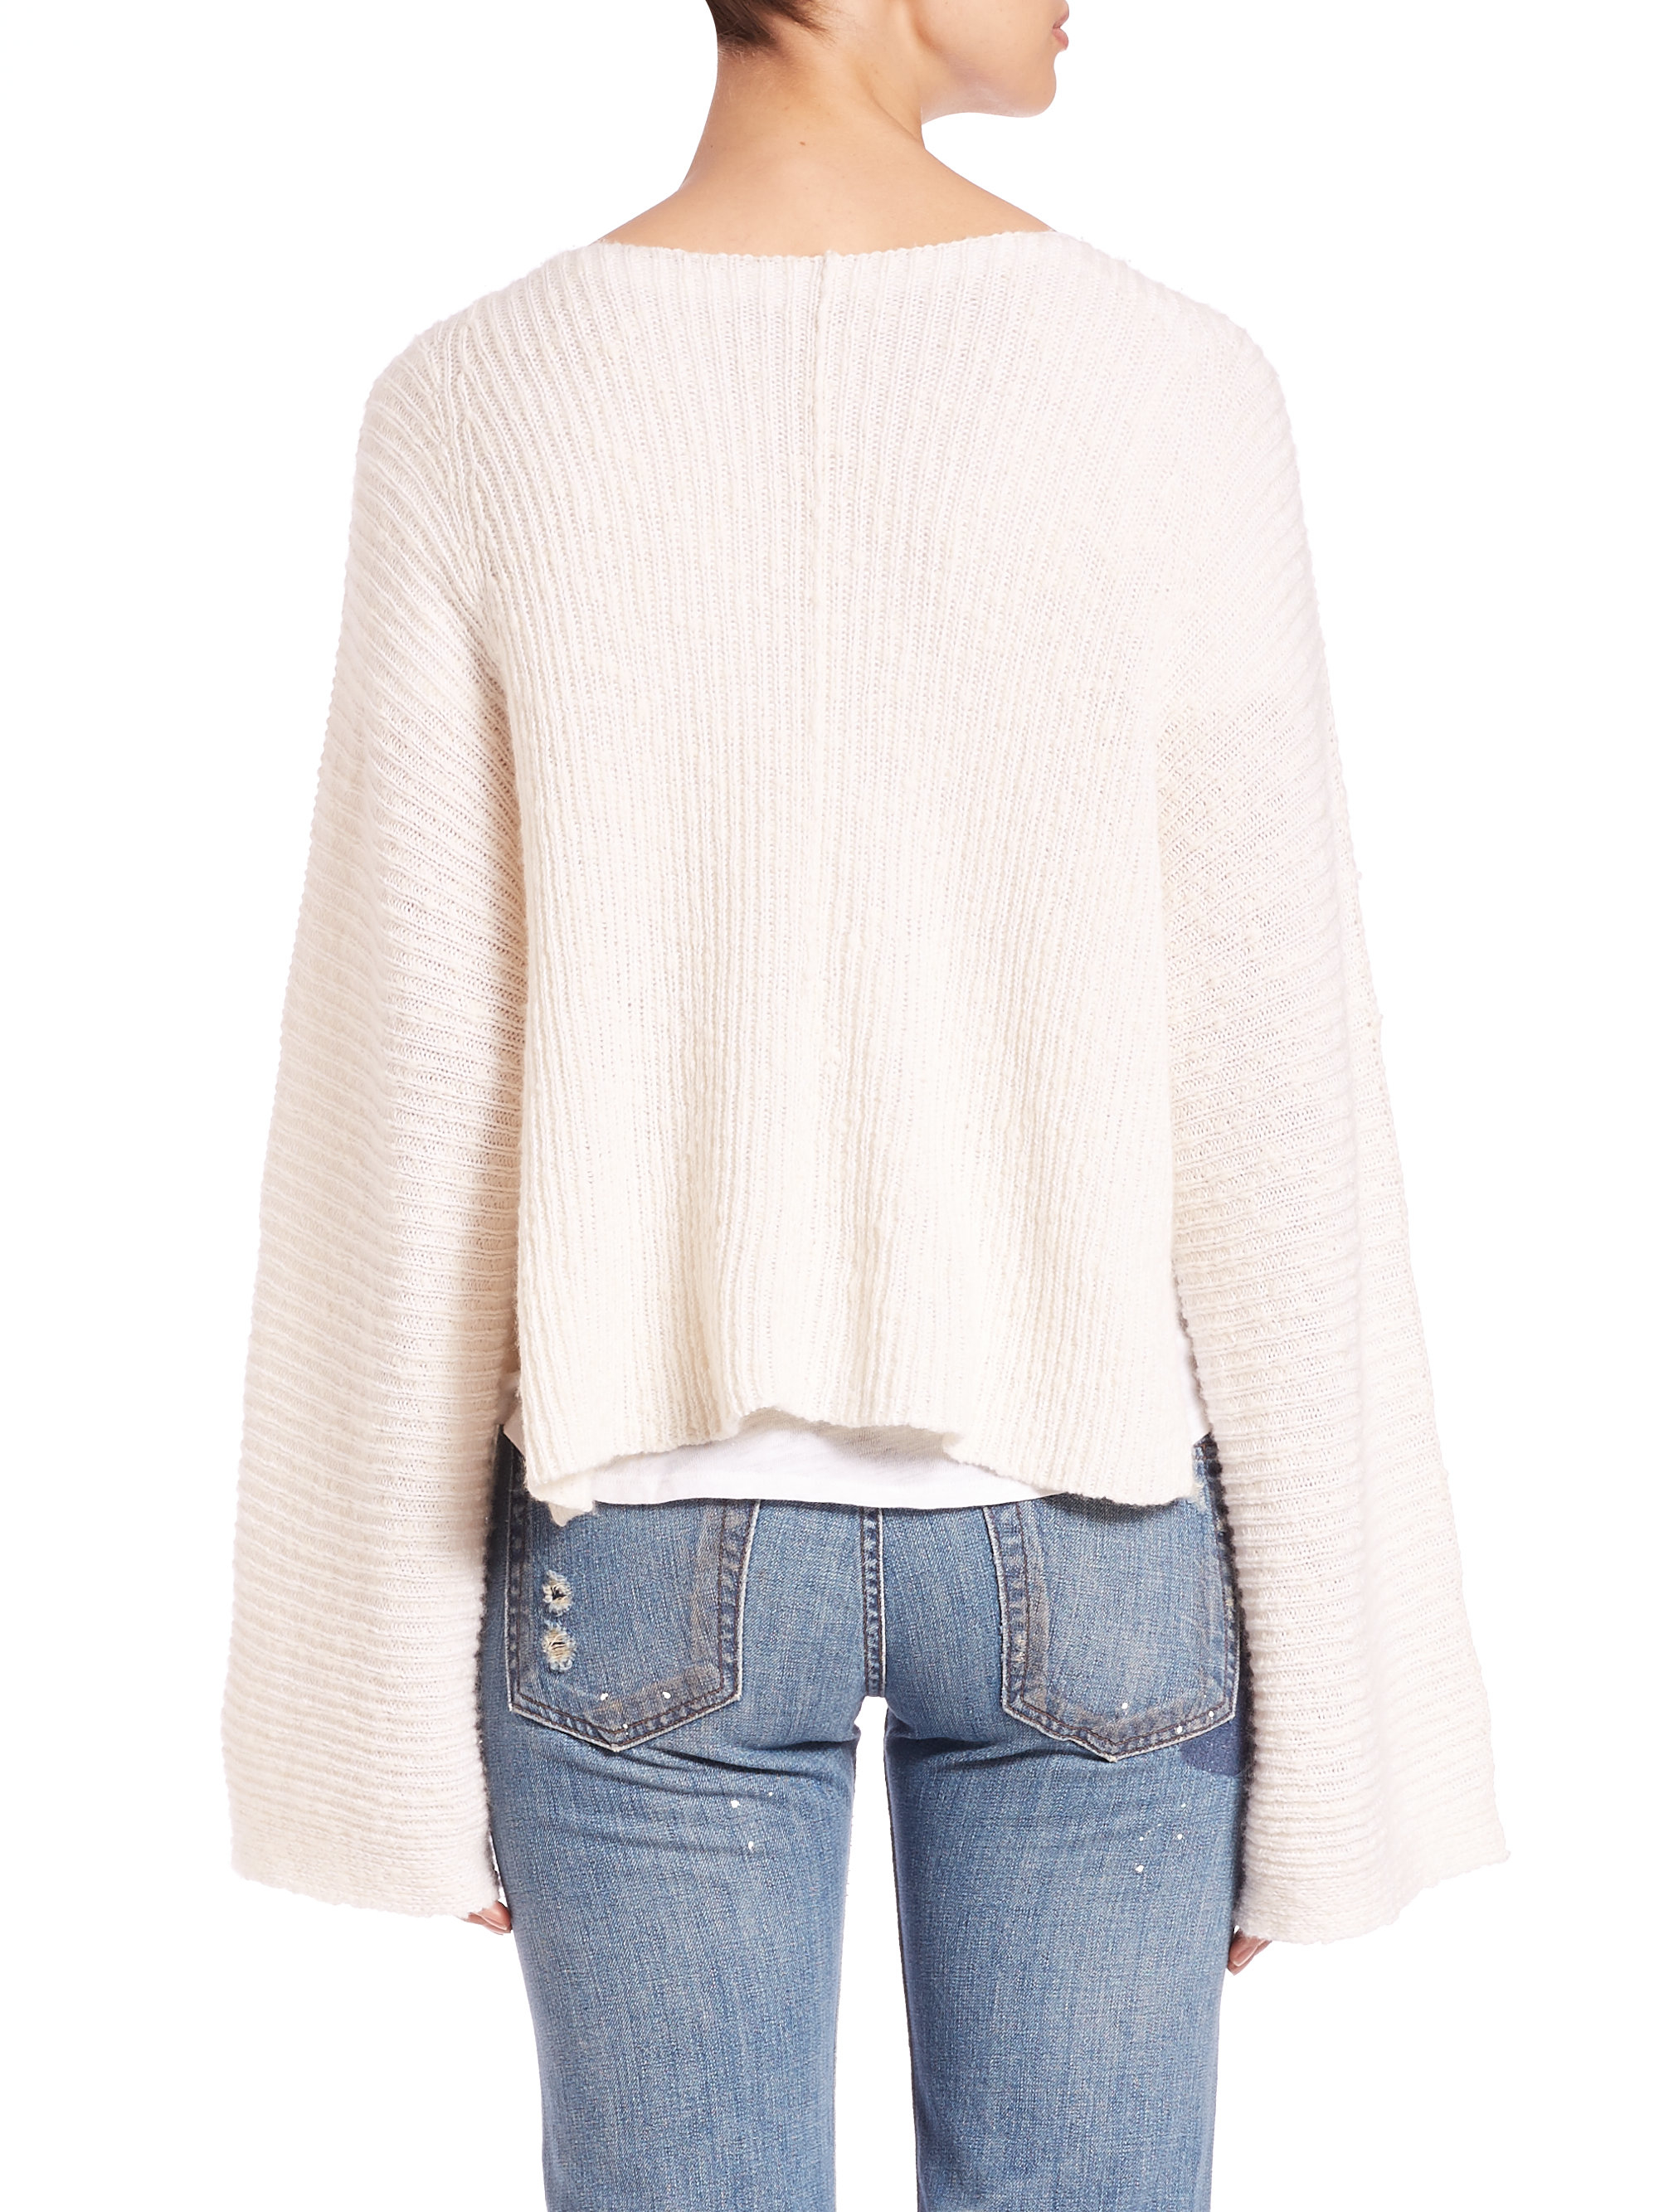 Helmut lang Cashmere & Cotton Pullover Sweater in White | Lyst